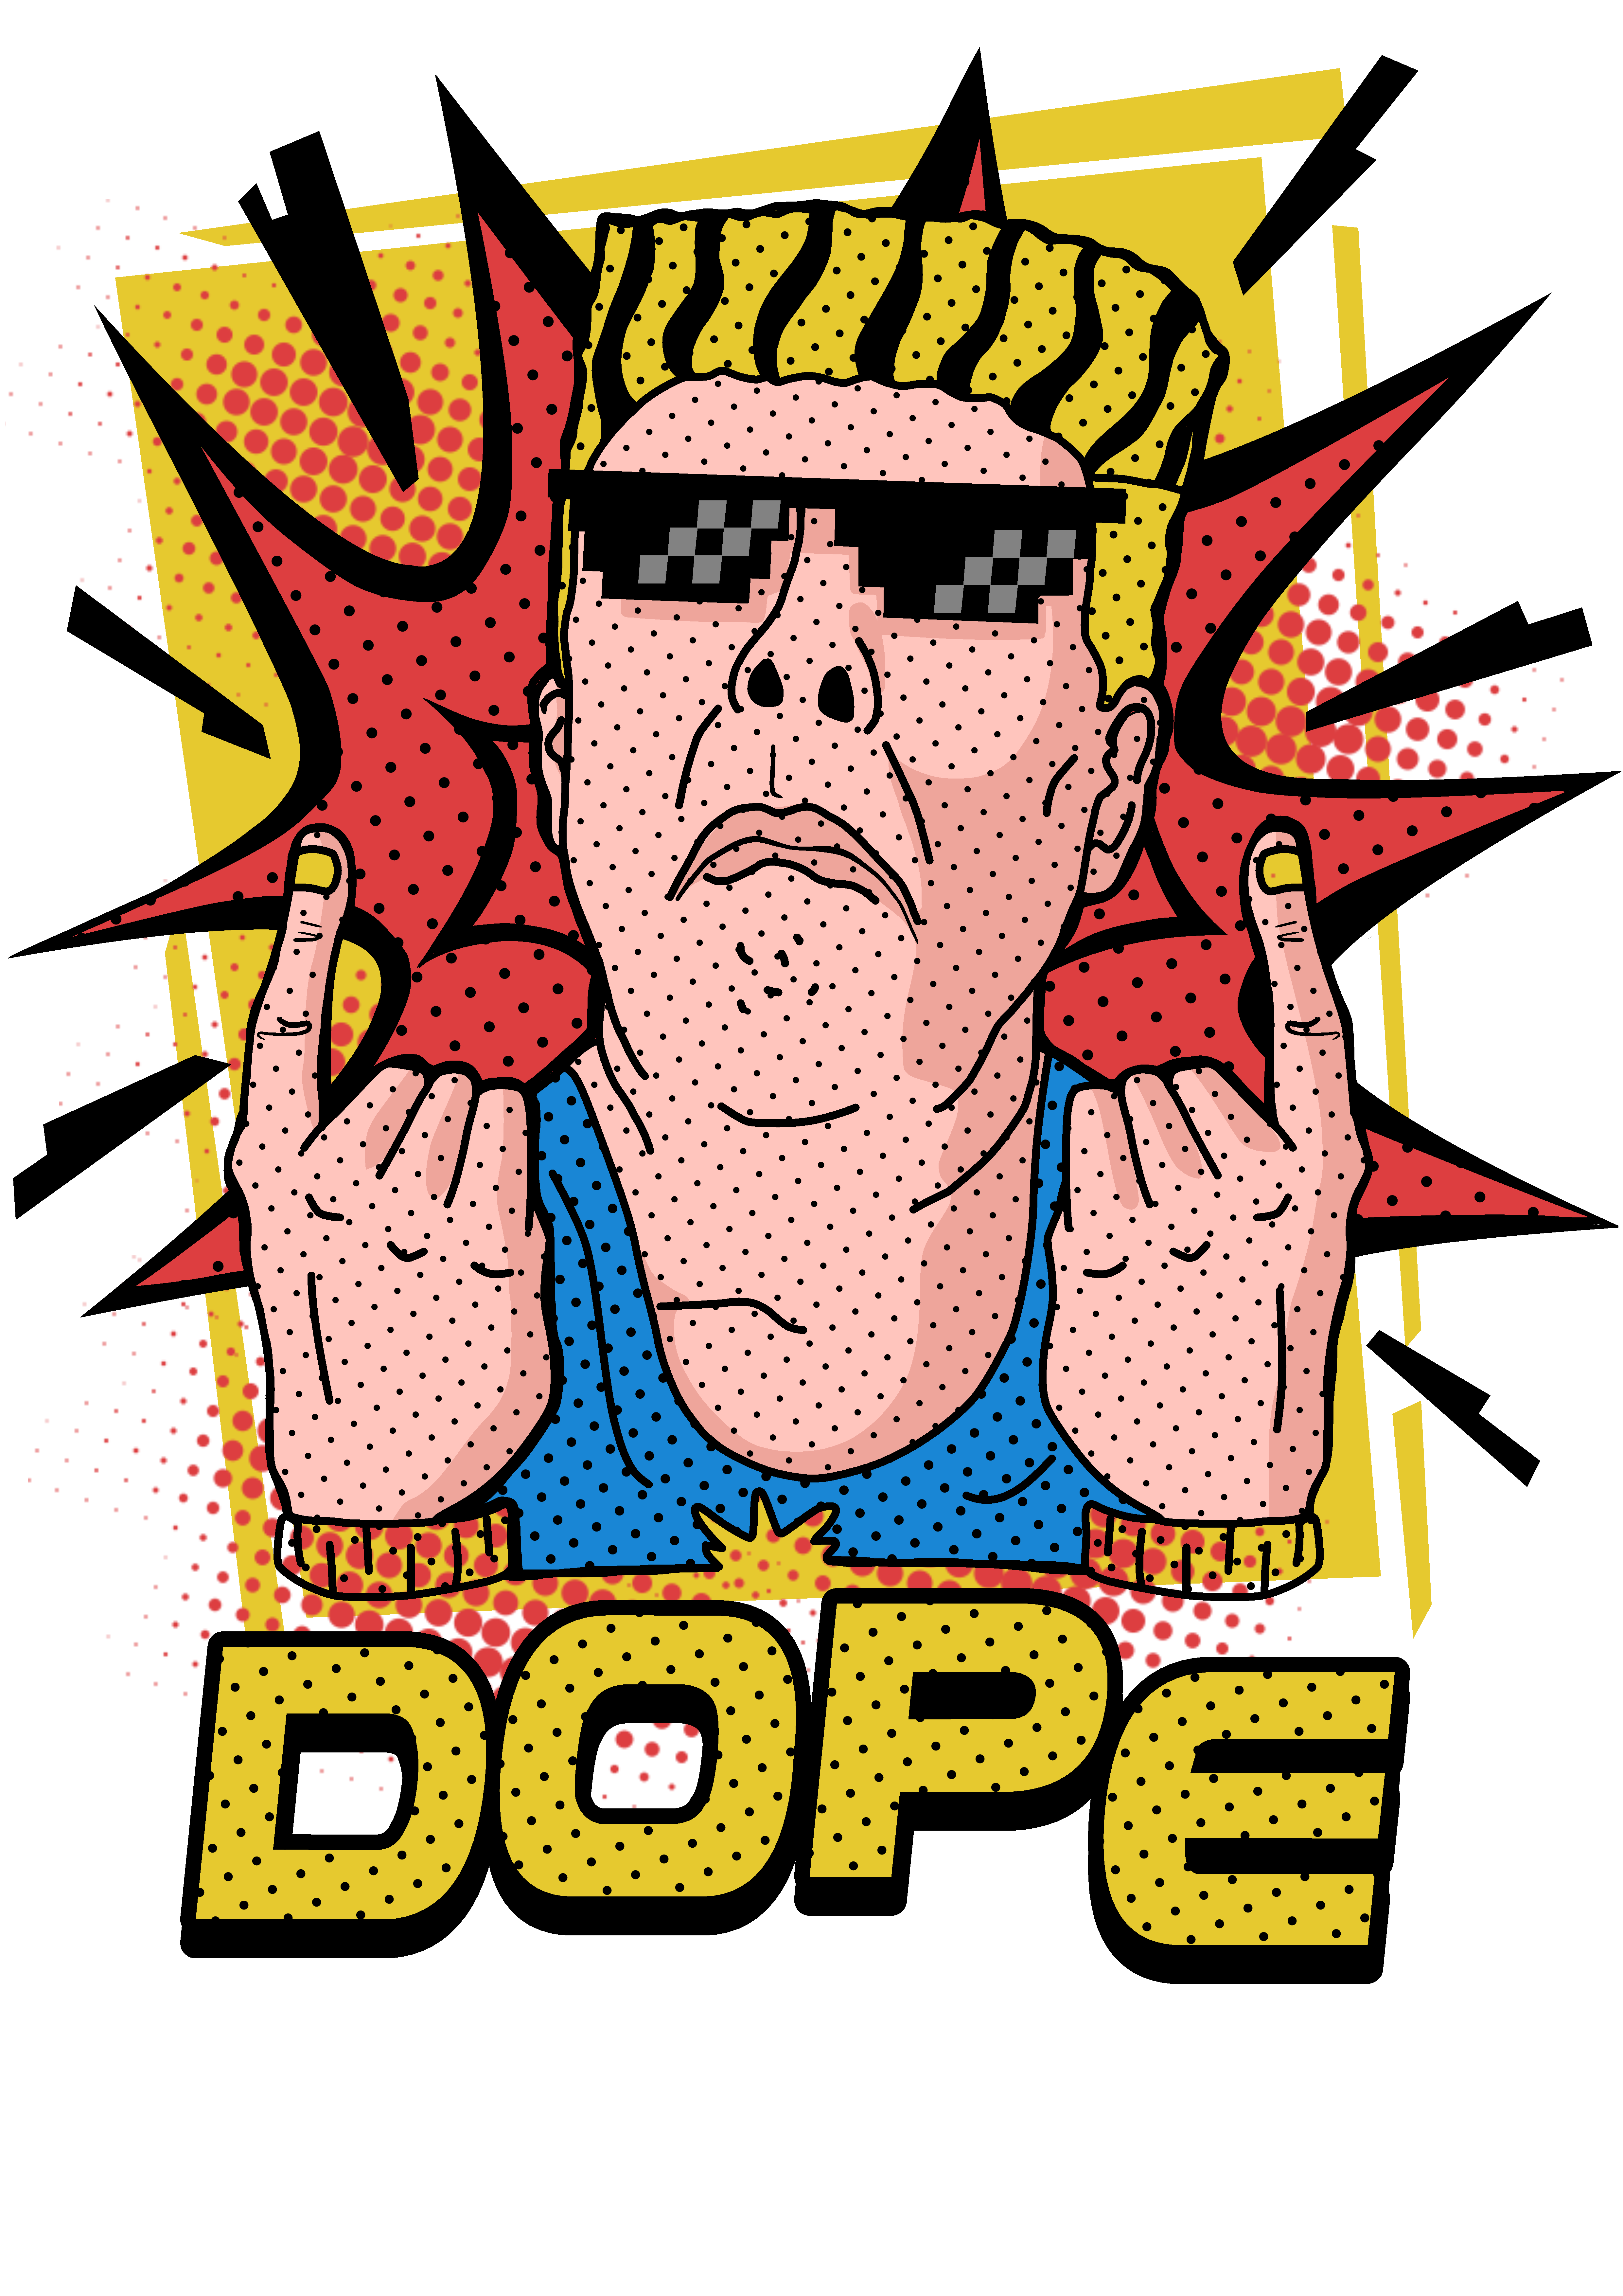 Create a funny, creative t-shirt in pop art culture style